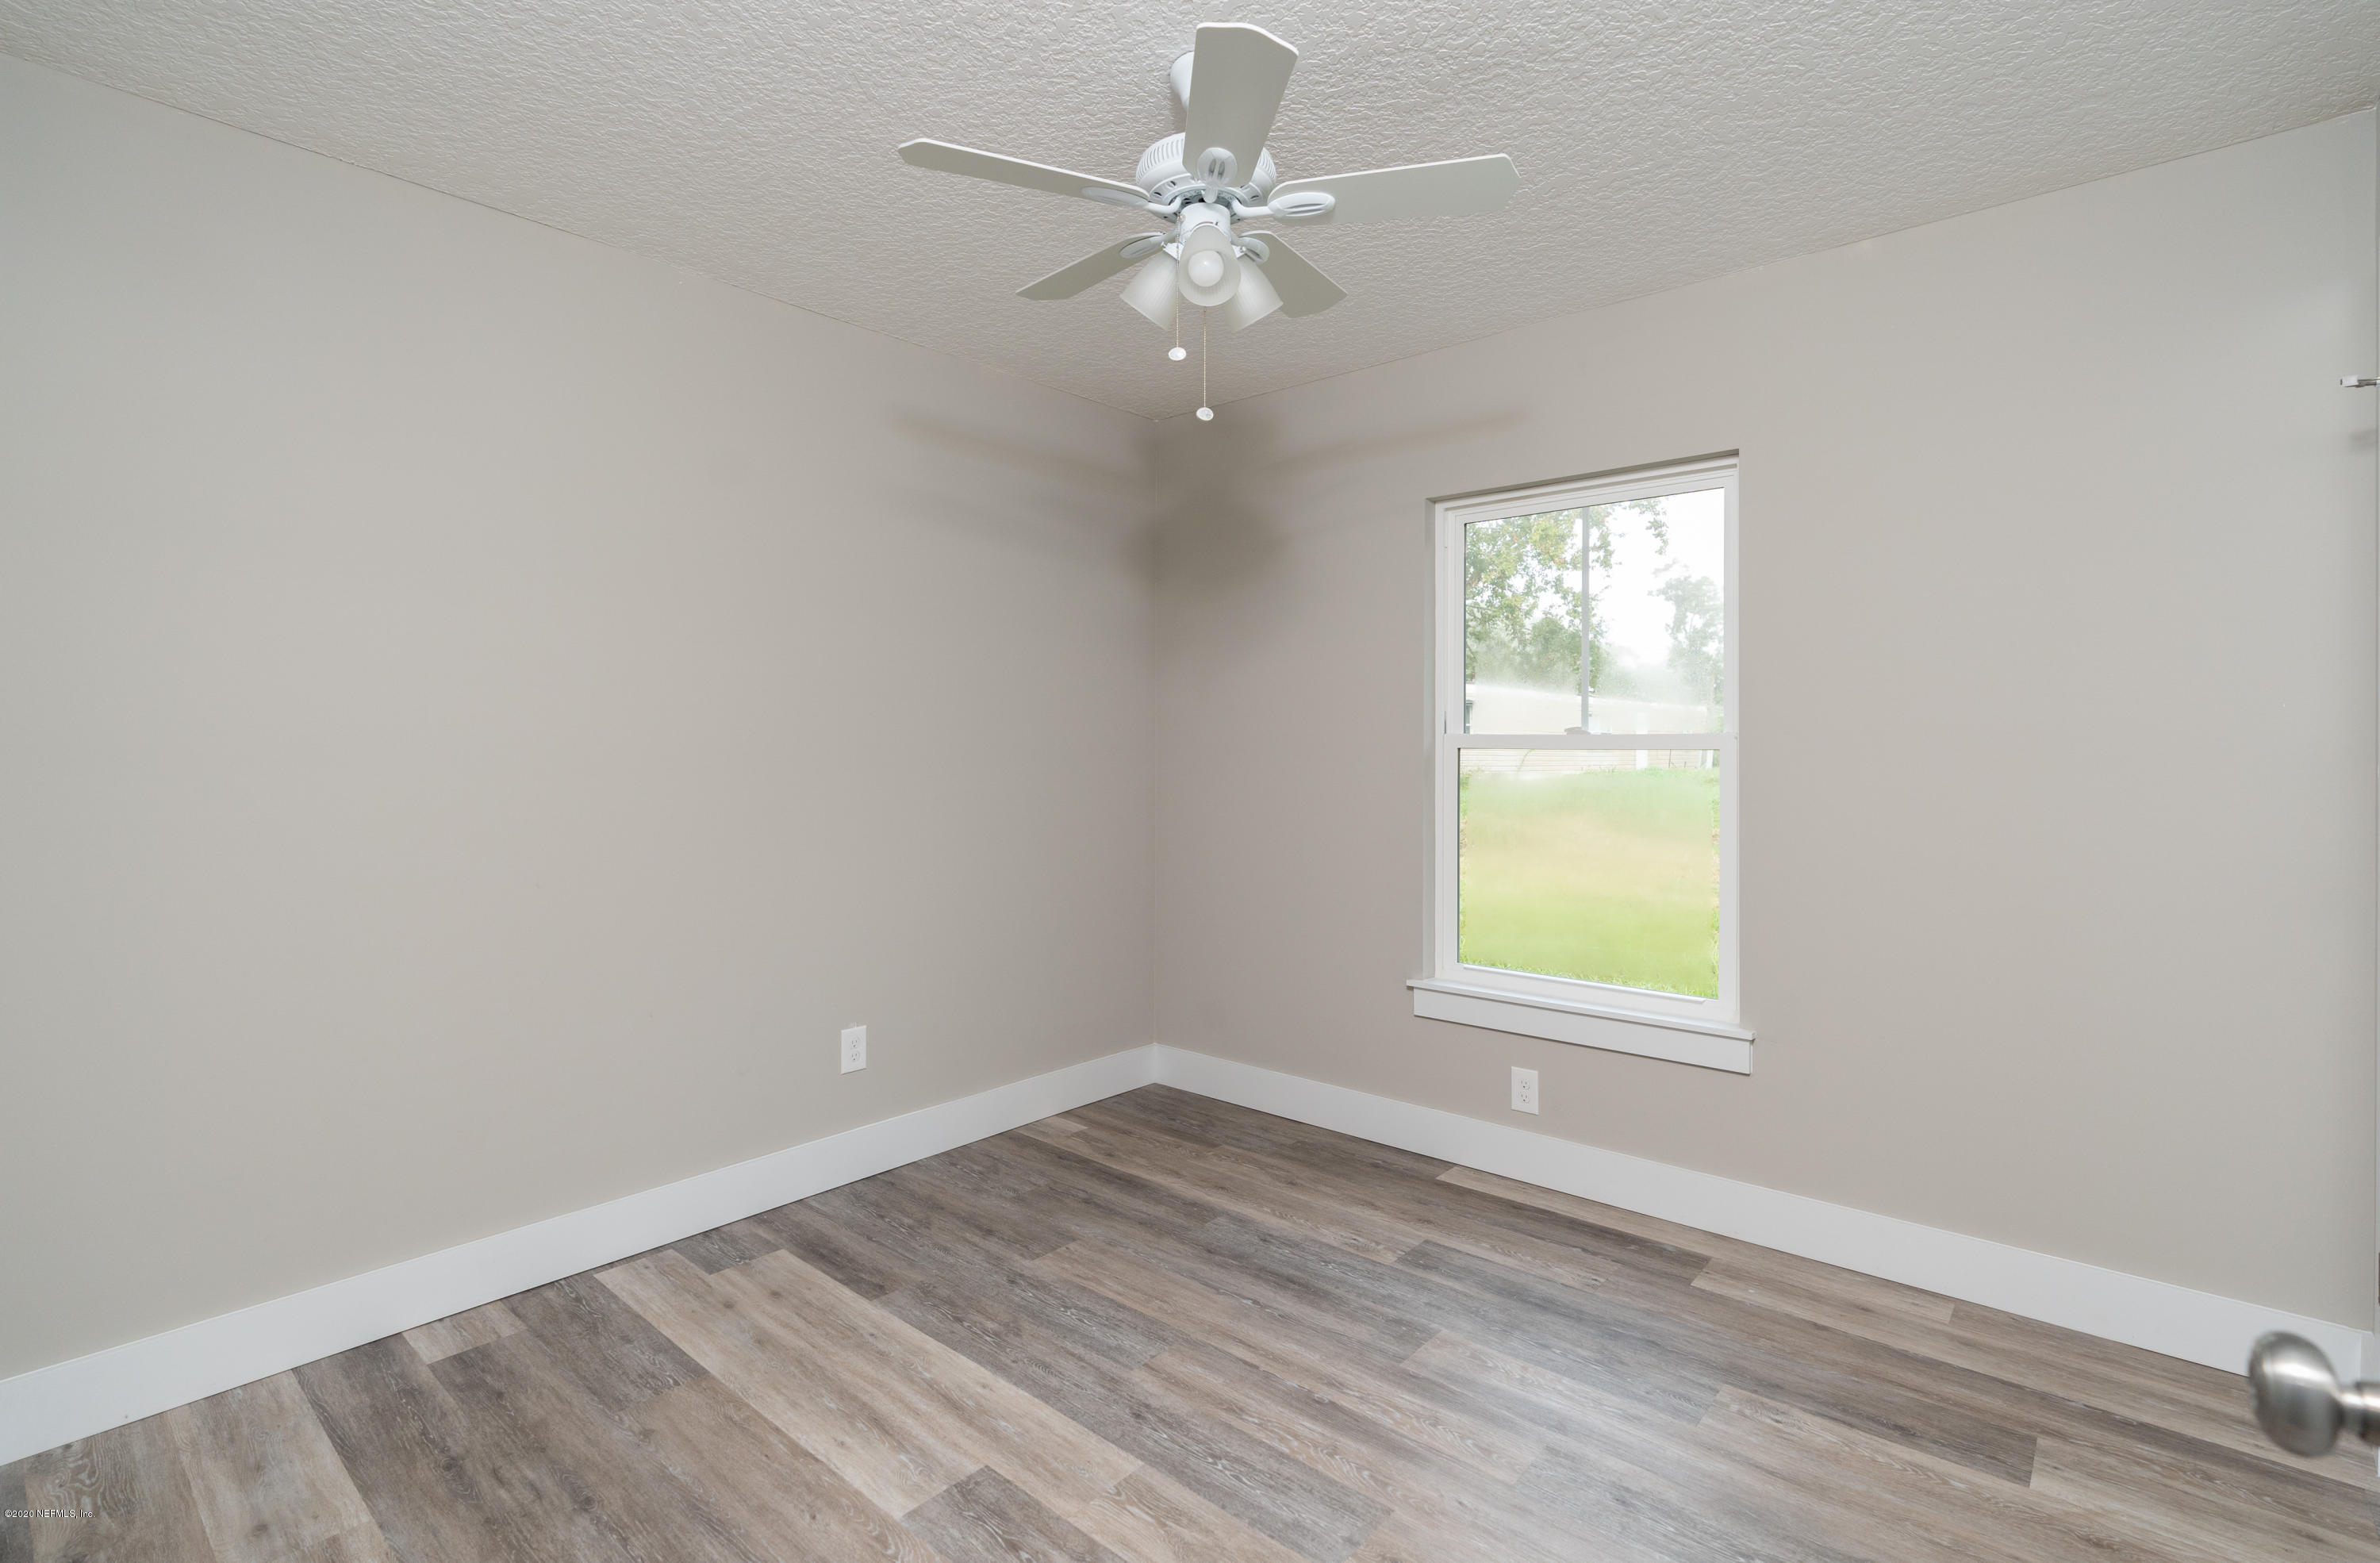 2867 EIGHTH, ST AUGUSTINE, FLORIDA 32084, 3 Bedrooms Bedrooms, ,2 BathroomsBathrooms,Residential,For sale,EIGHTH,1051773